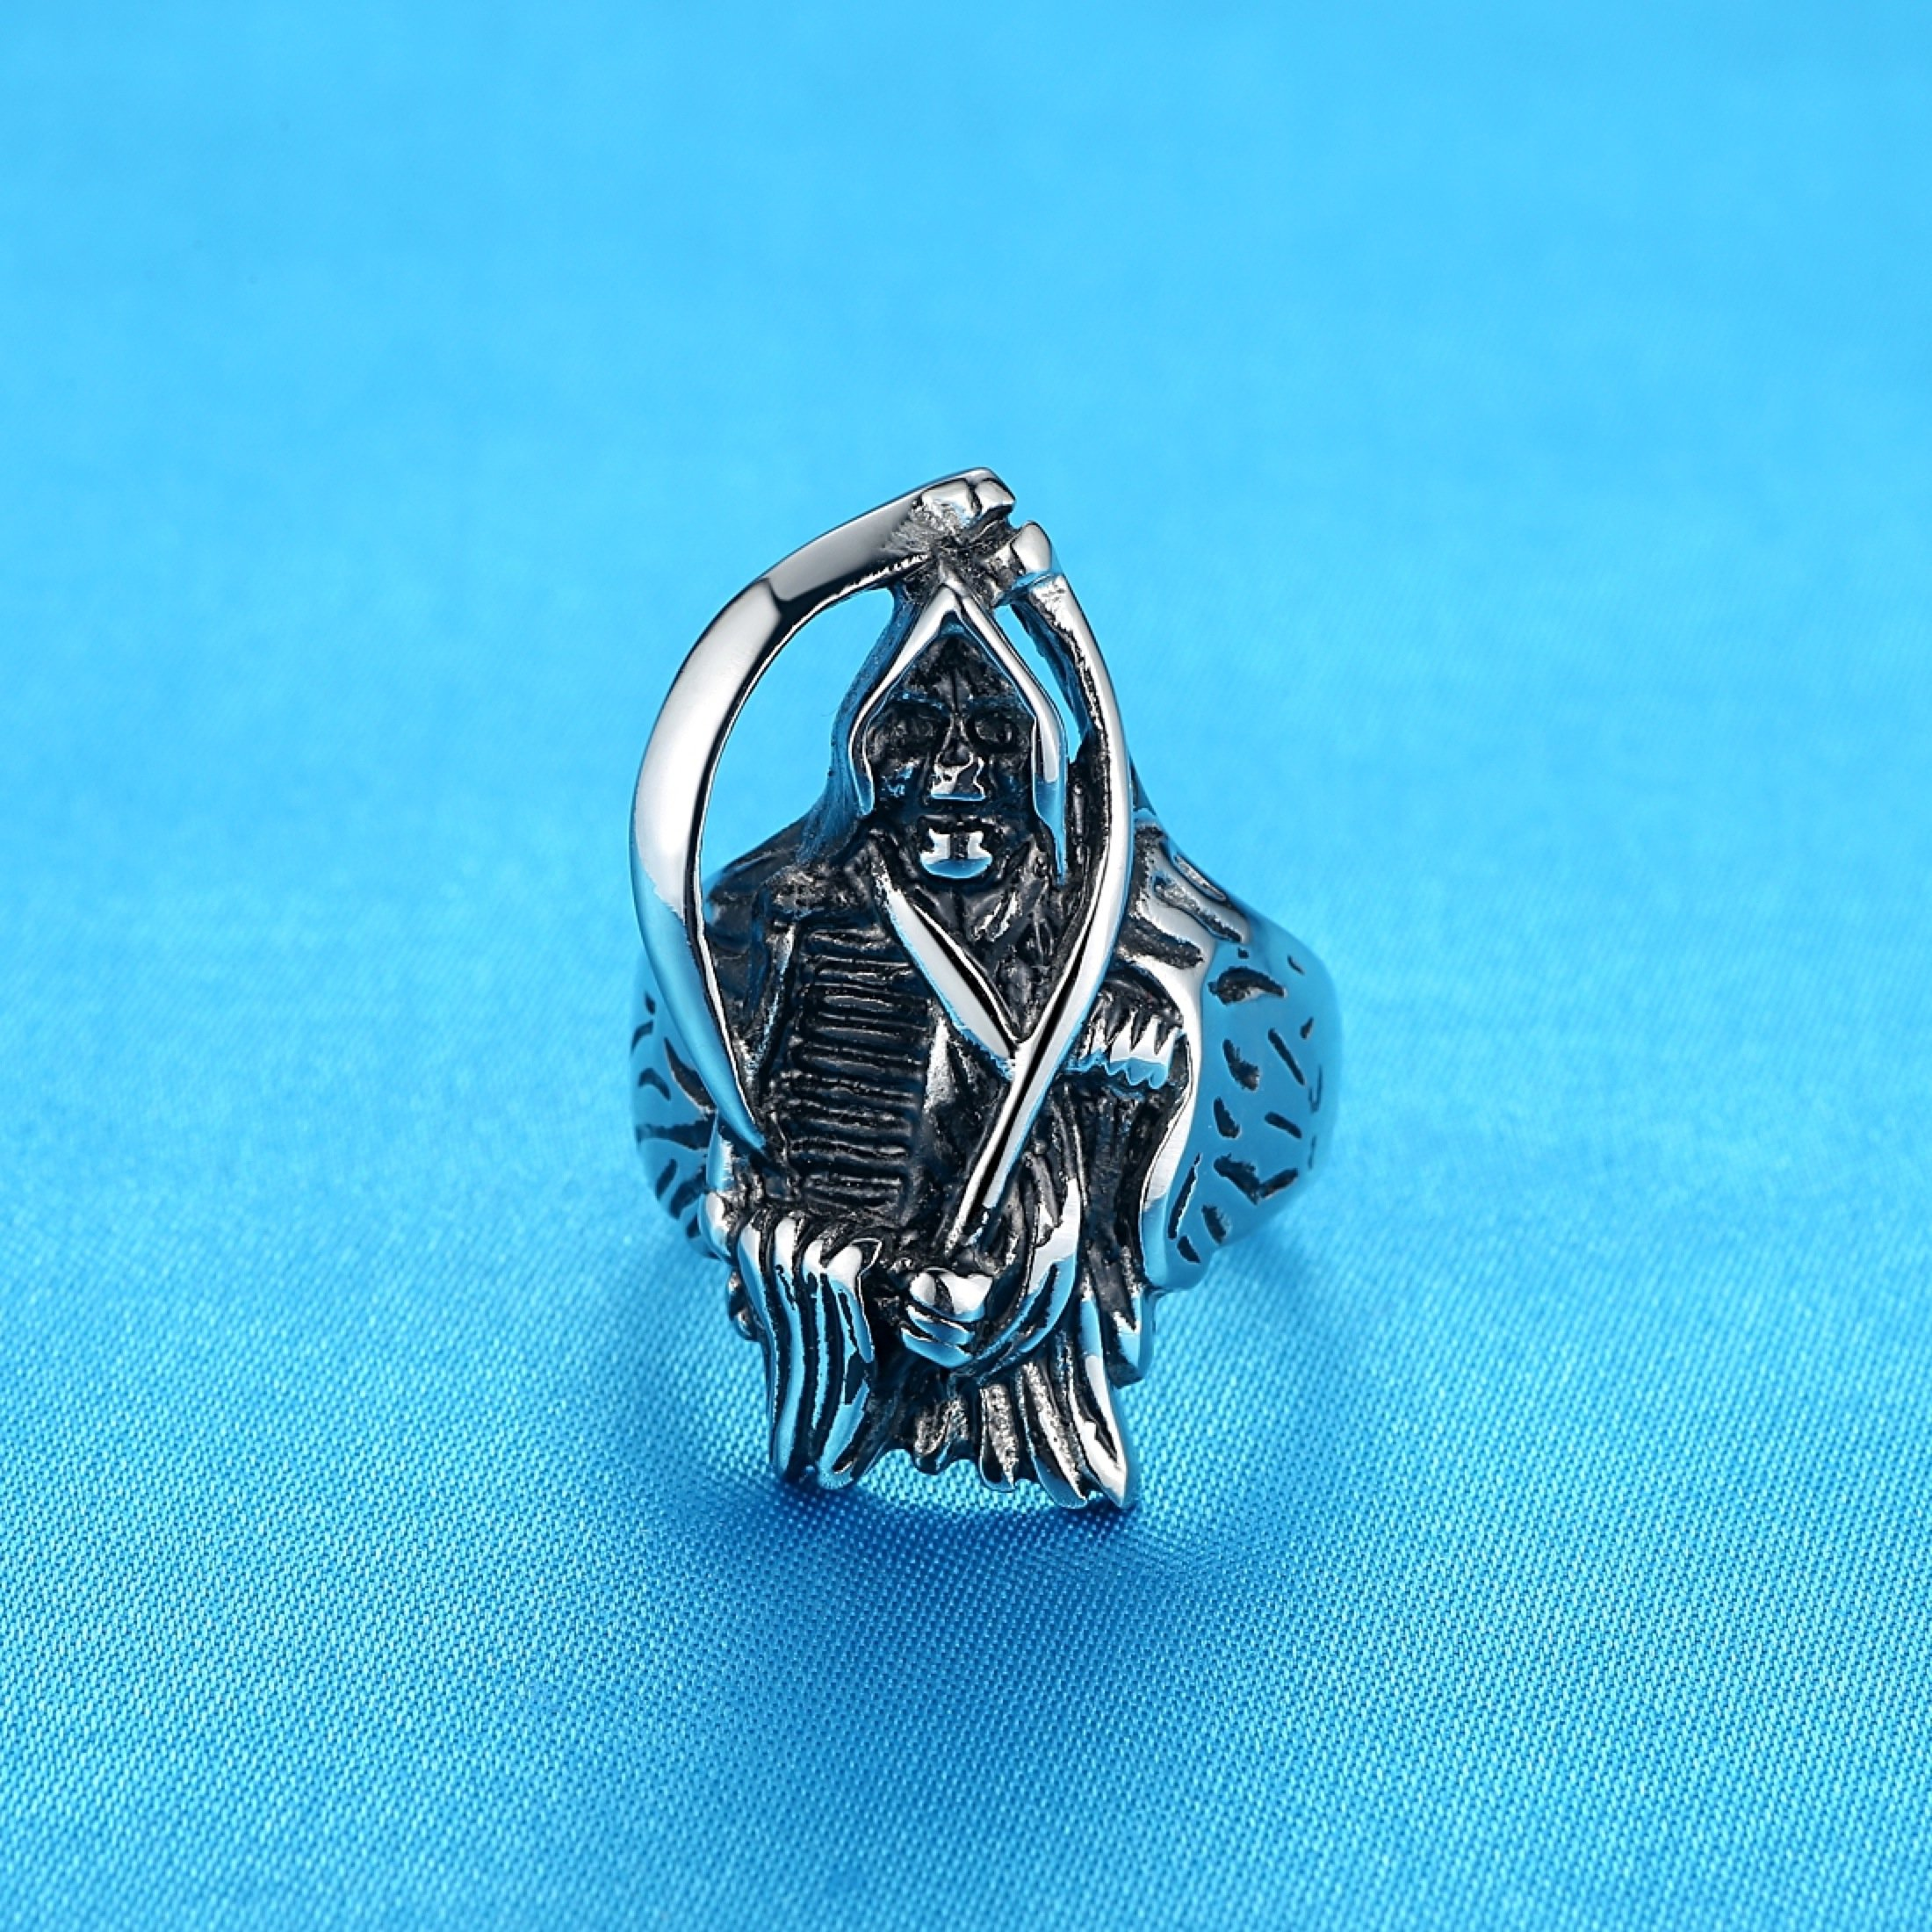 LineAve Men's Stainless Steel Grim Reaper Death Ring, Size 8, 8a5013s08 by LineAve (Image #2)